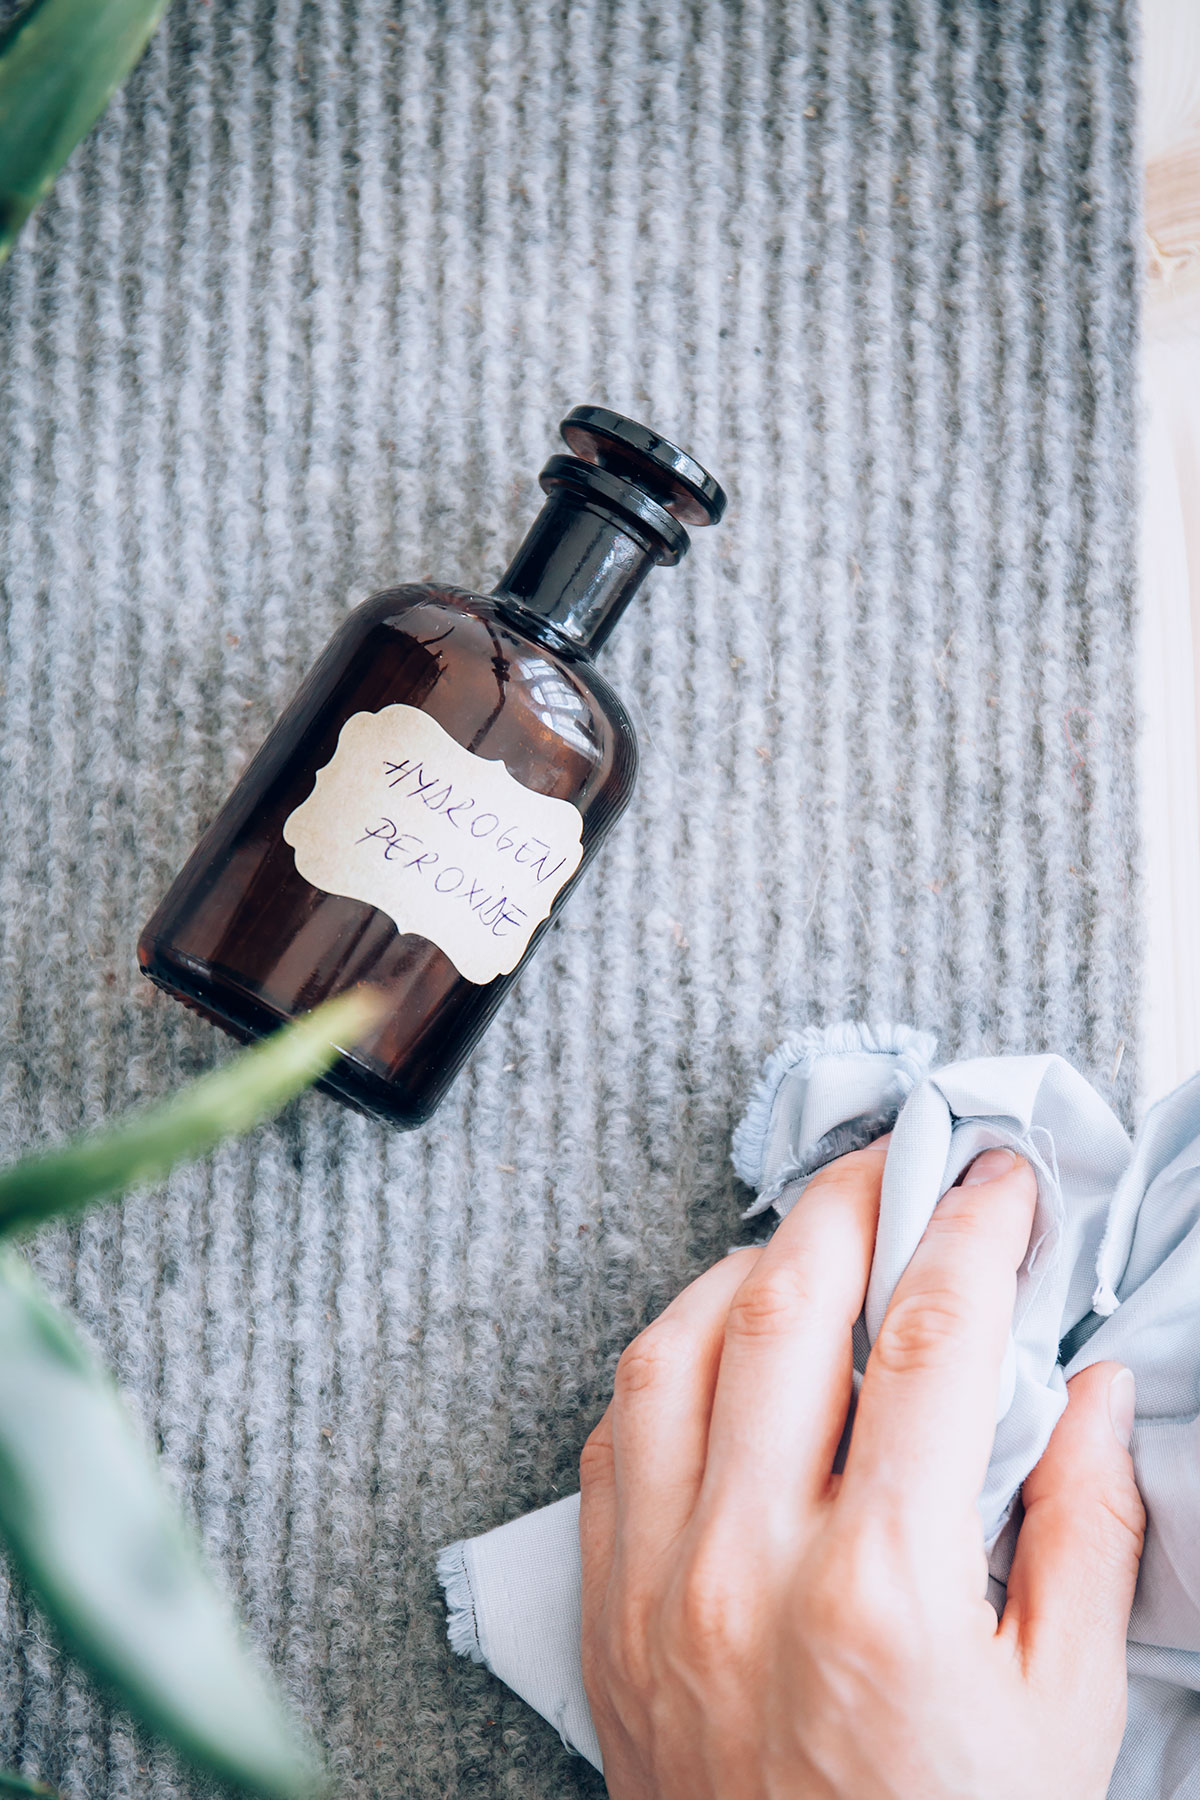 Remove carpet stains with hydrogen peroxide